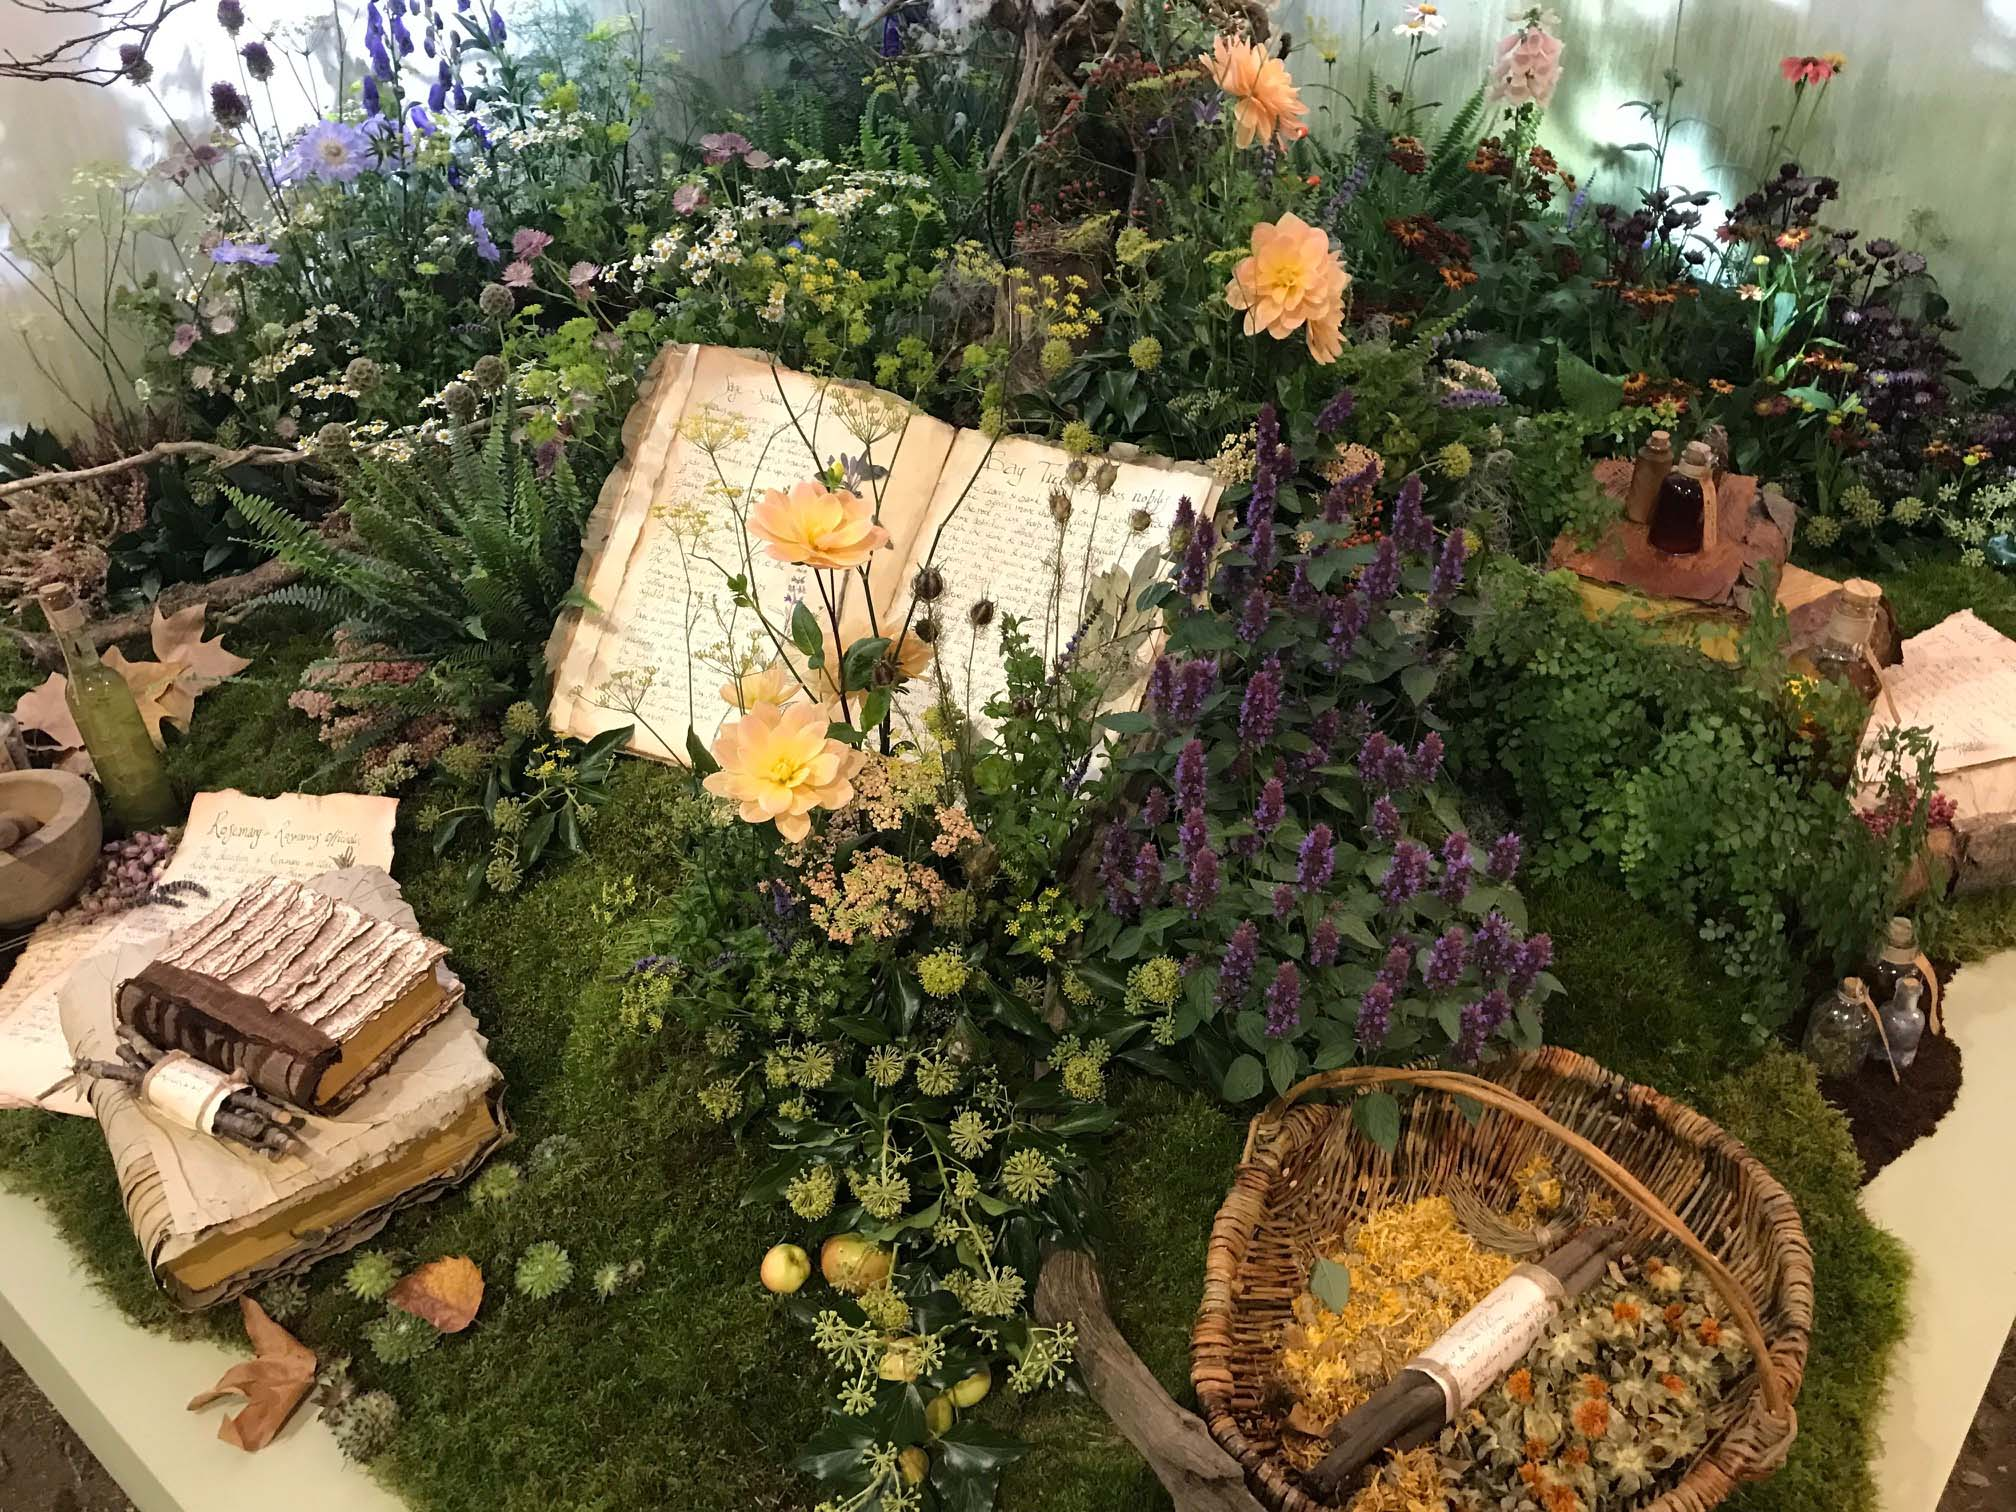 Five things to see at RHS Chelsea Flower Show 2021